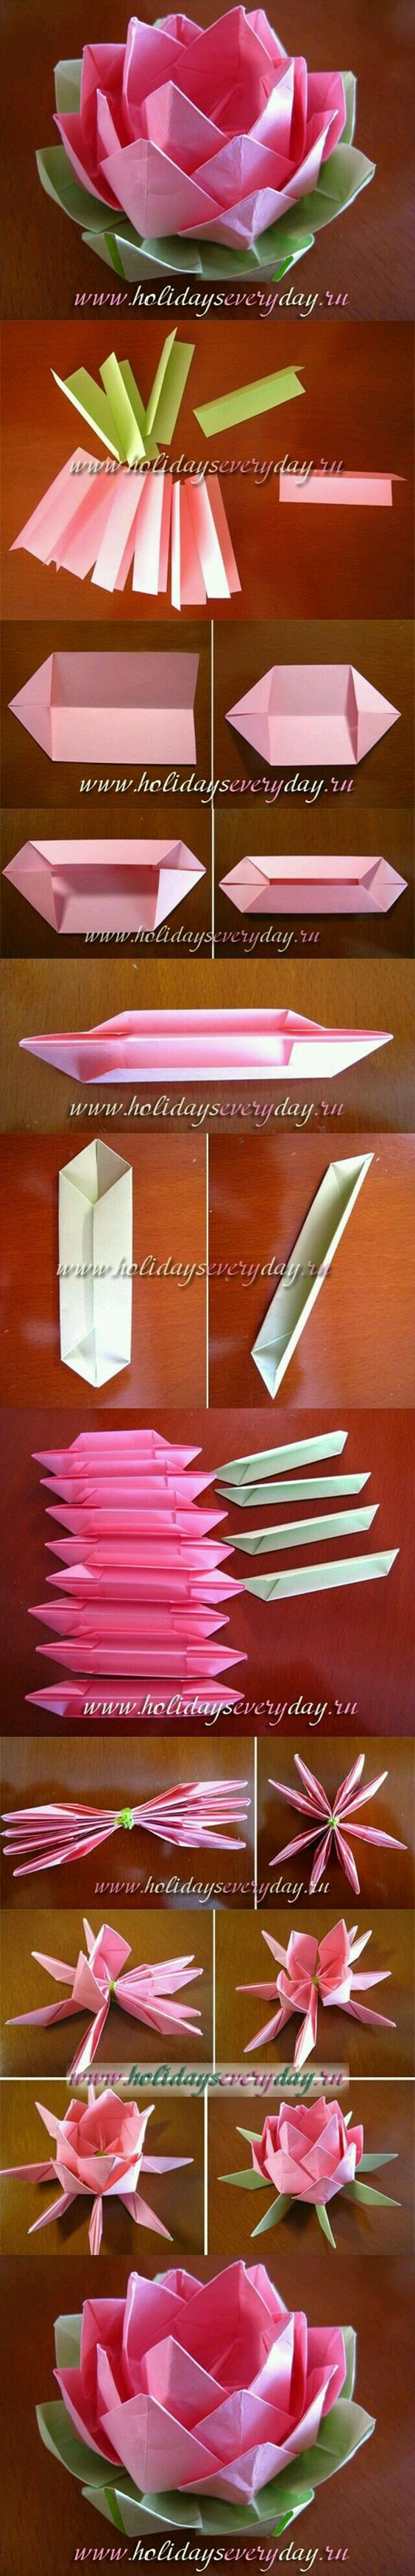 How to create Origami Flowers. Lovely!